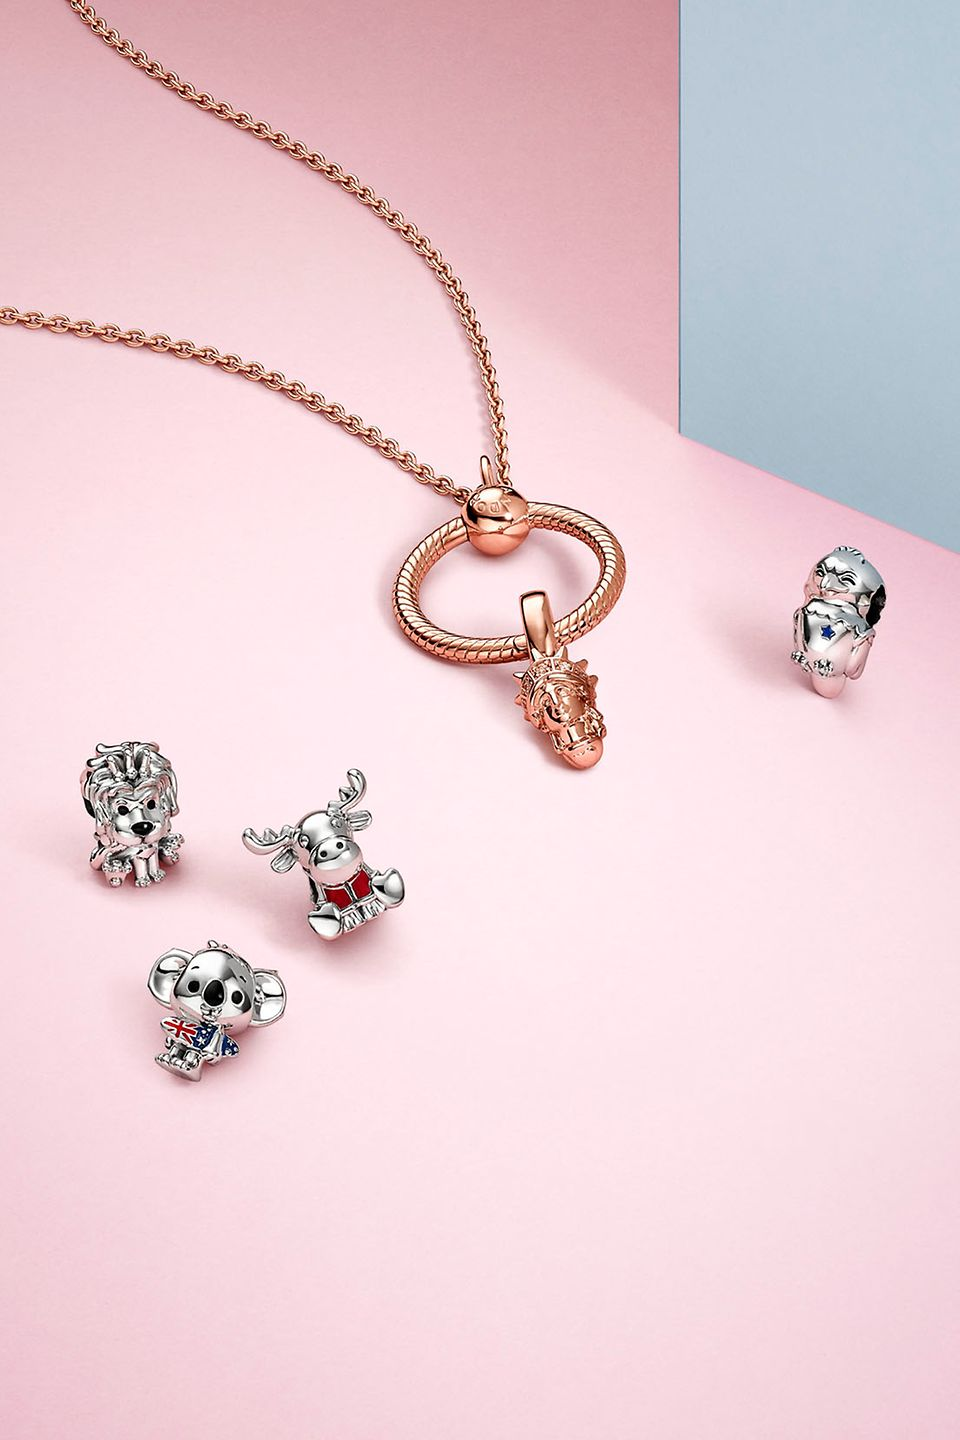 Charms und Nationalsymbole aus der Pandora Places Collection